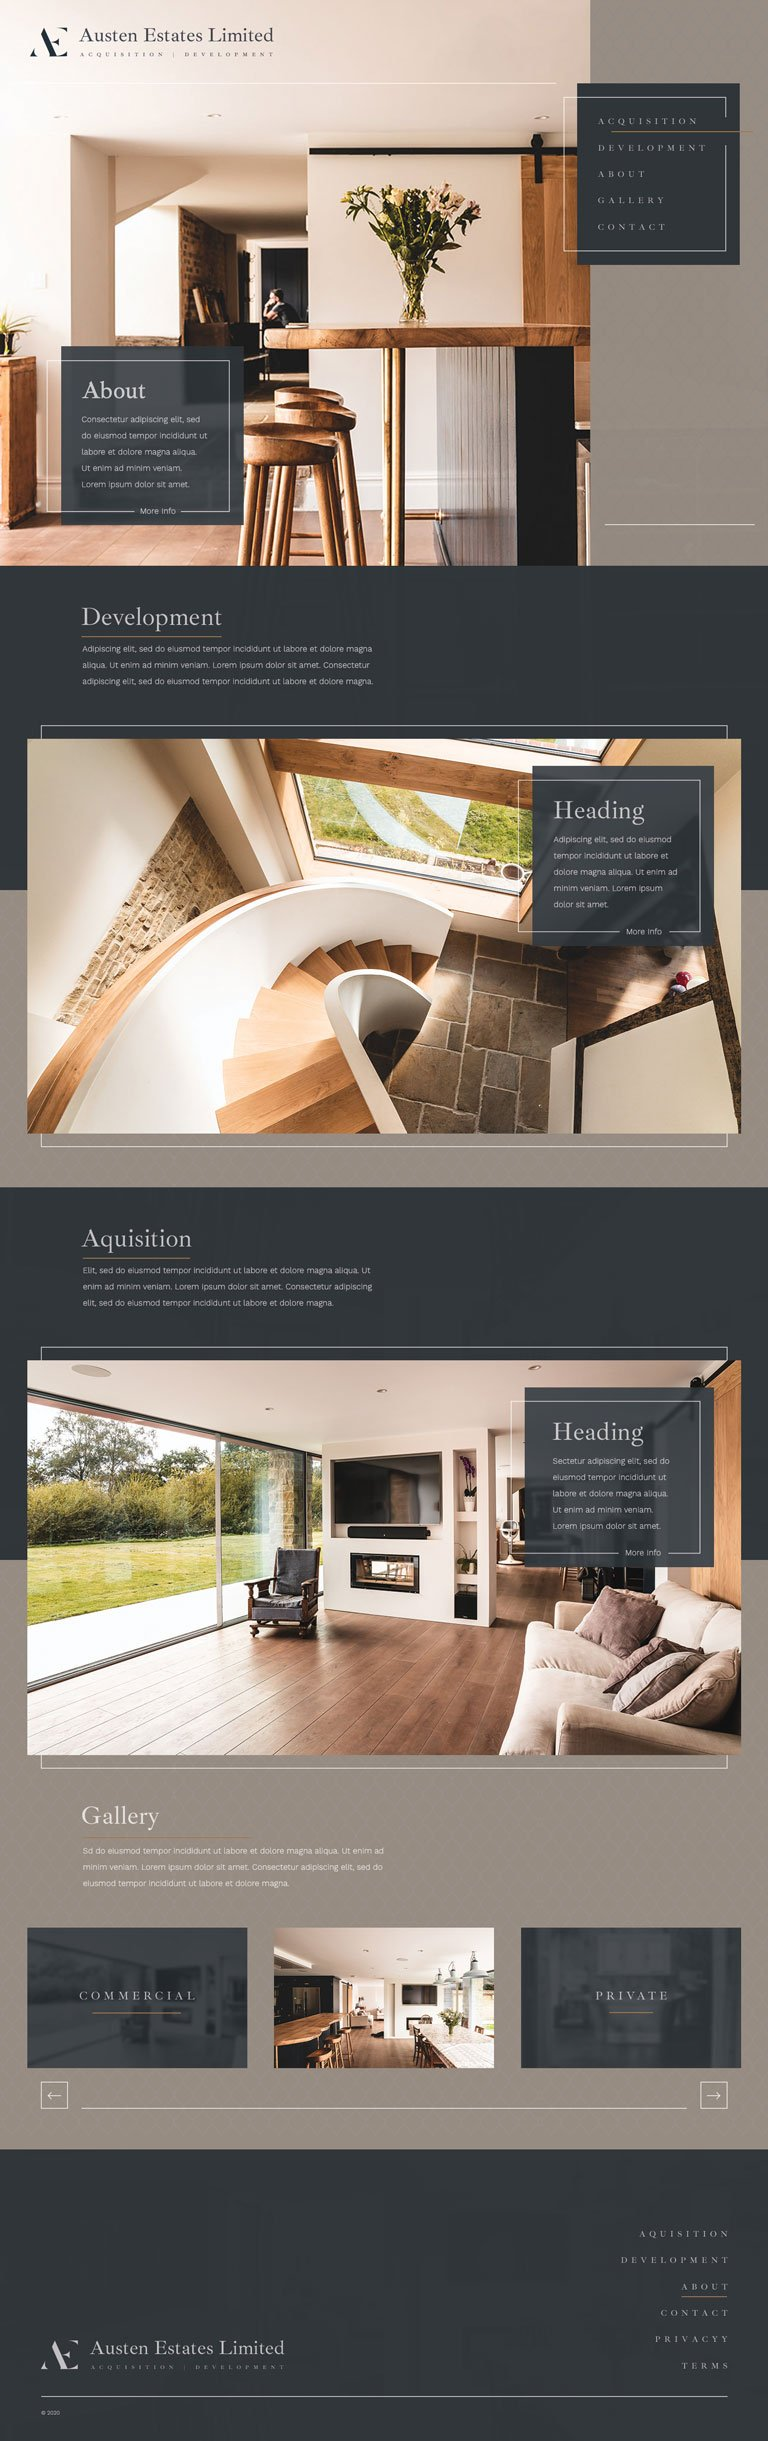 Web Design Example Sheffield Homepage